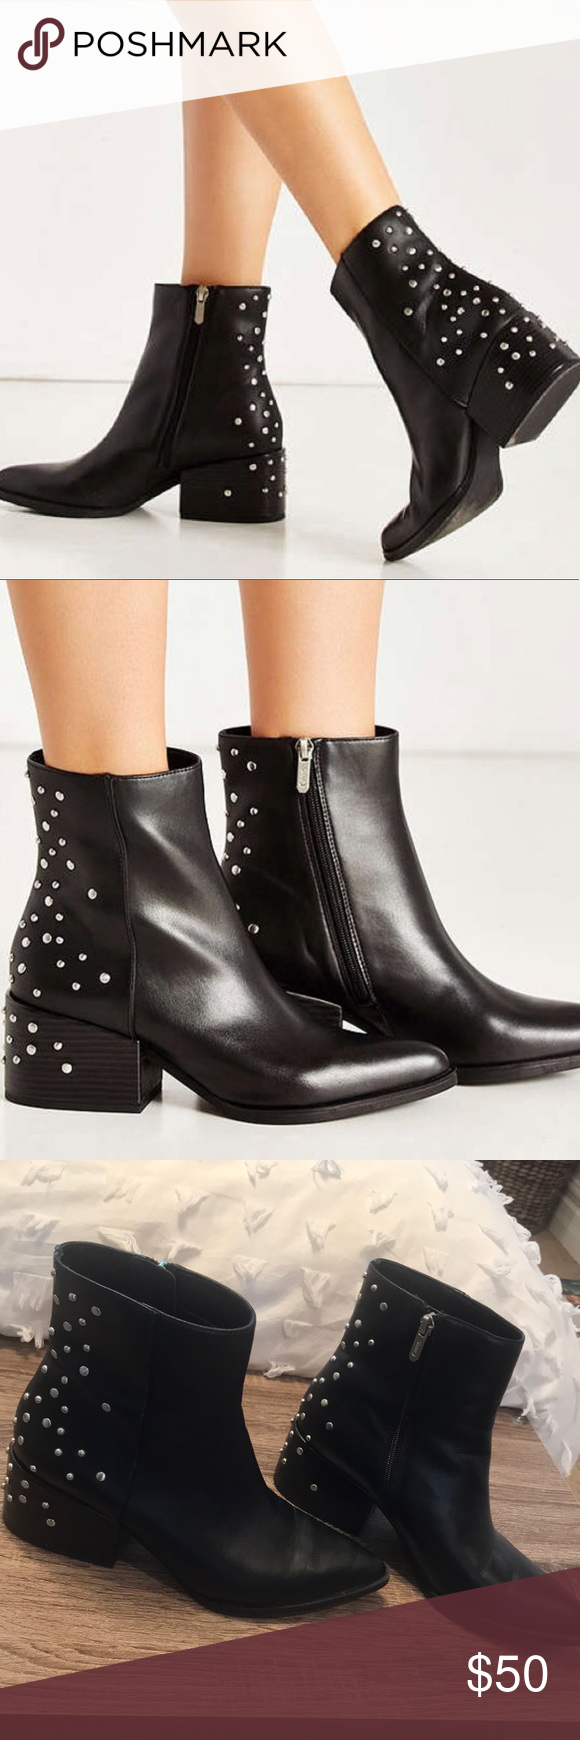 7d460fb16f3efa Circus by Sam Edelman Rae studded bootie Circus by Sam Edelman Rae studded  black boot in